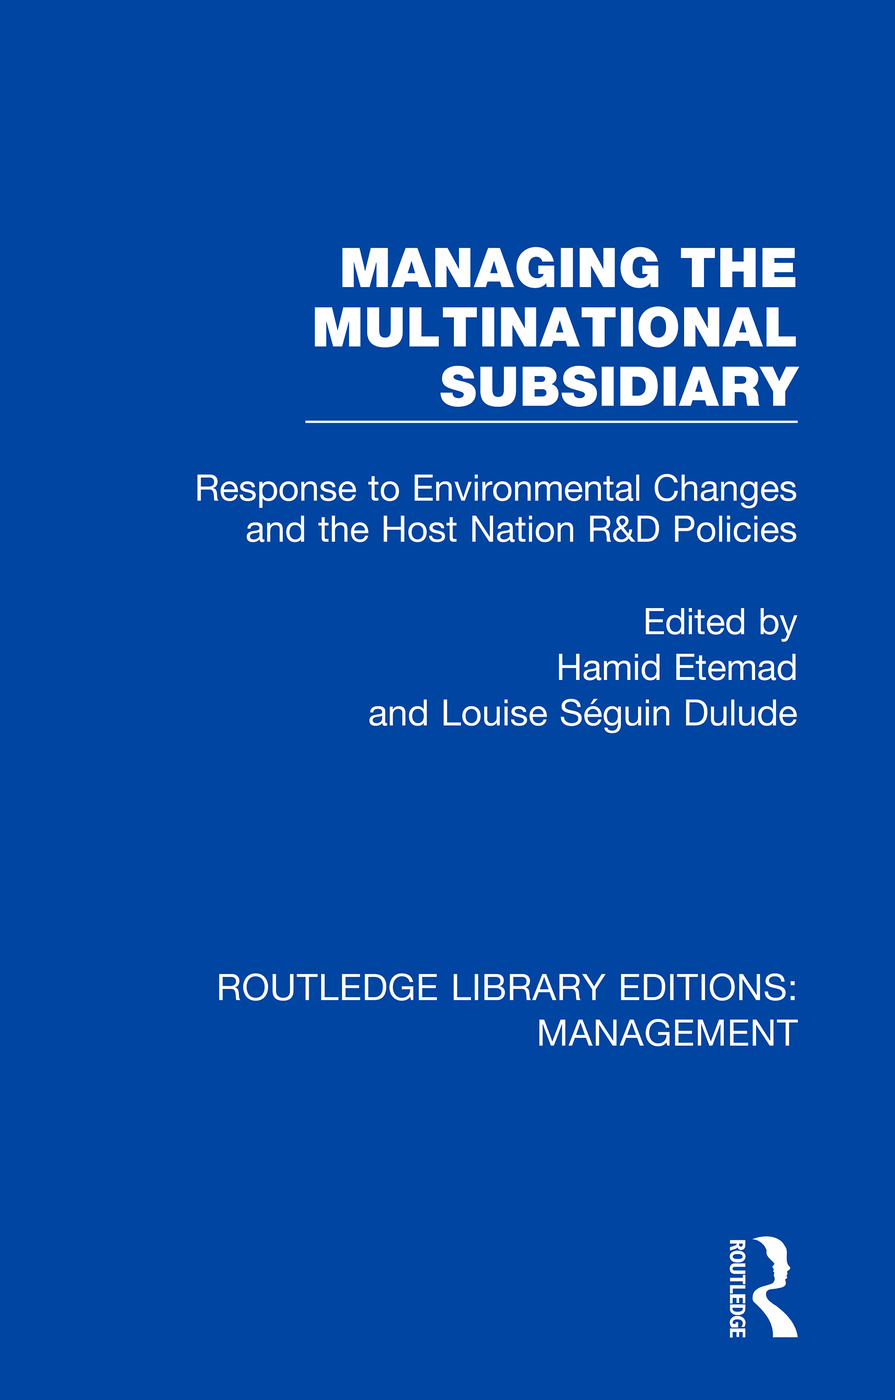 Managing the Multinational Subsidiary